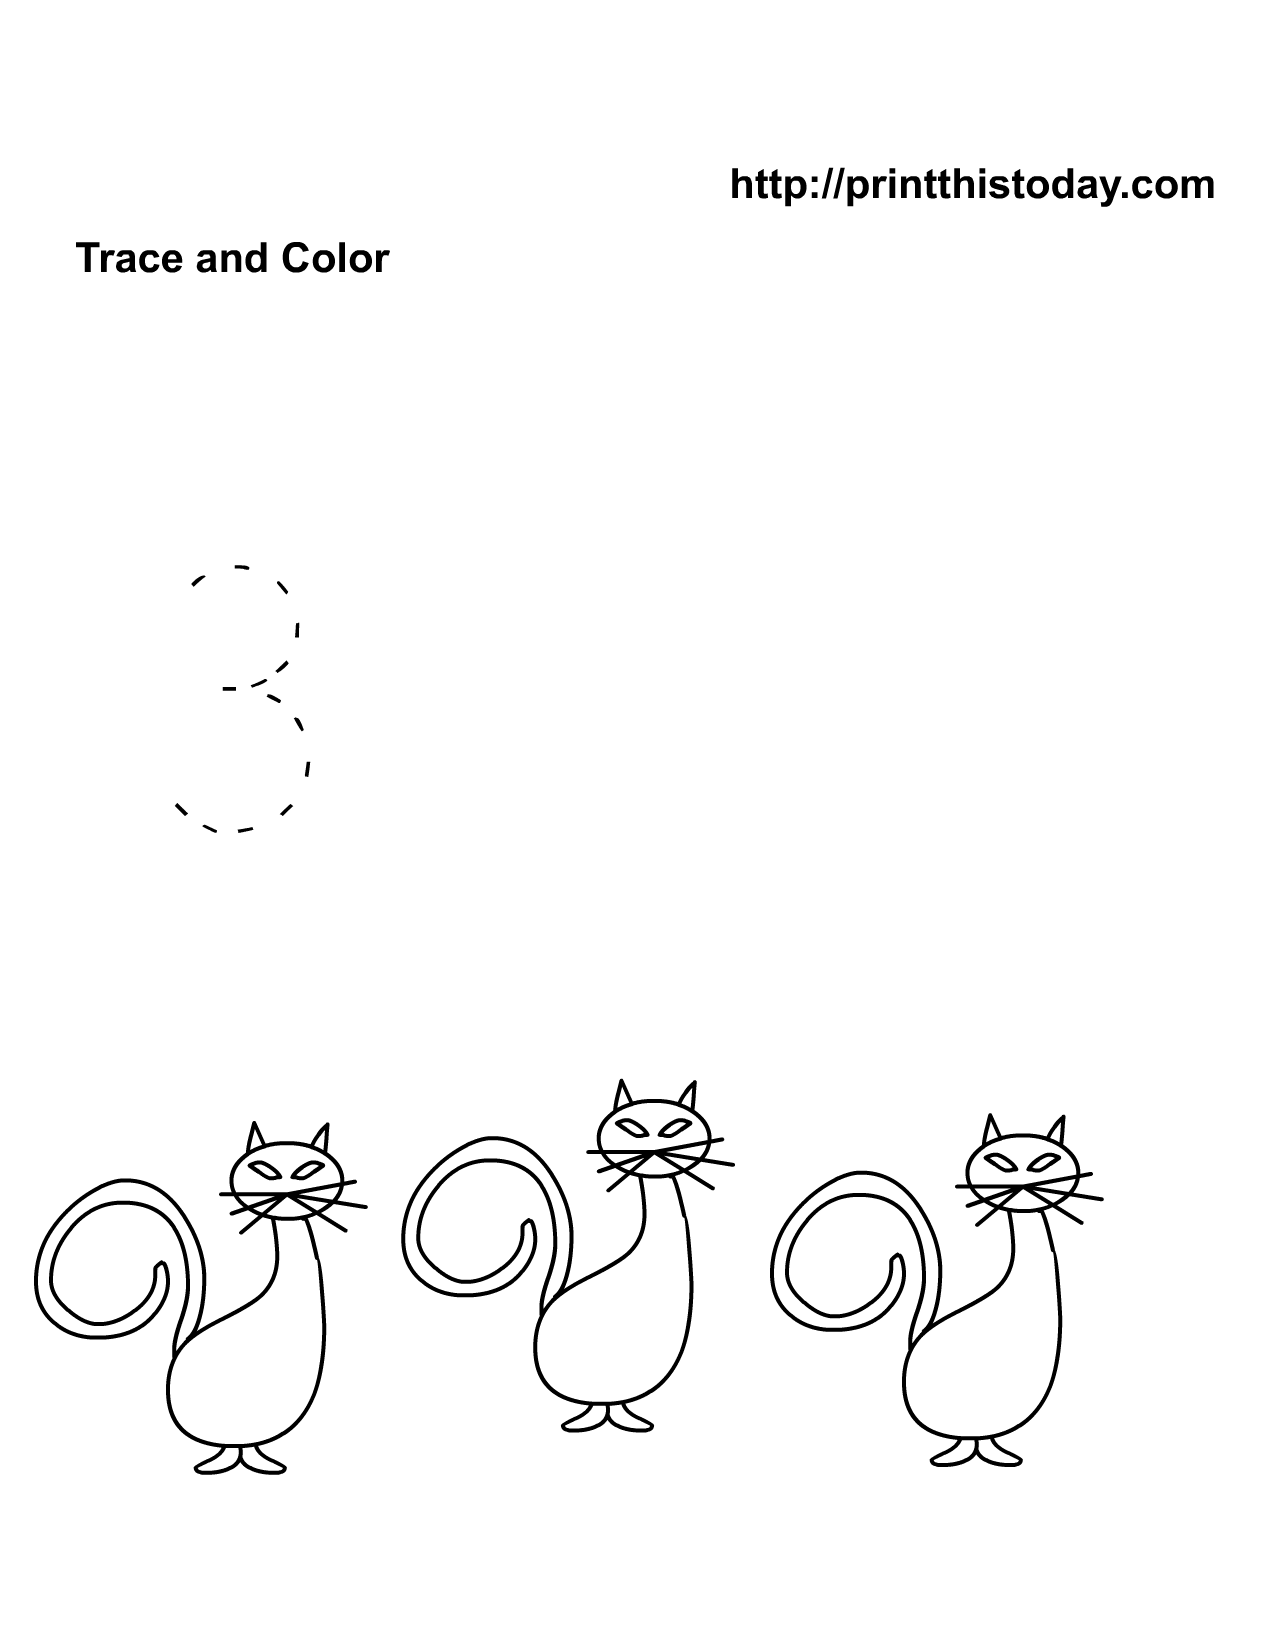 Worksheet Preschool Math Sheets free printable halloween math worksheets for pre school and cute three black cat count trace worksheet